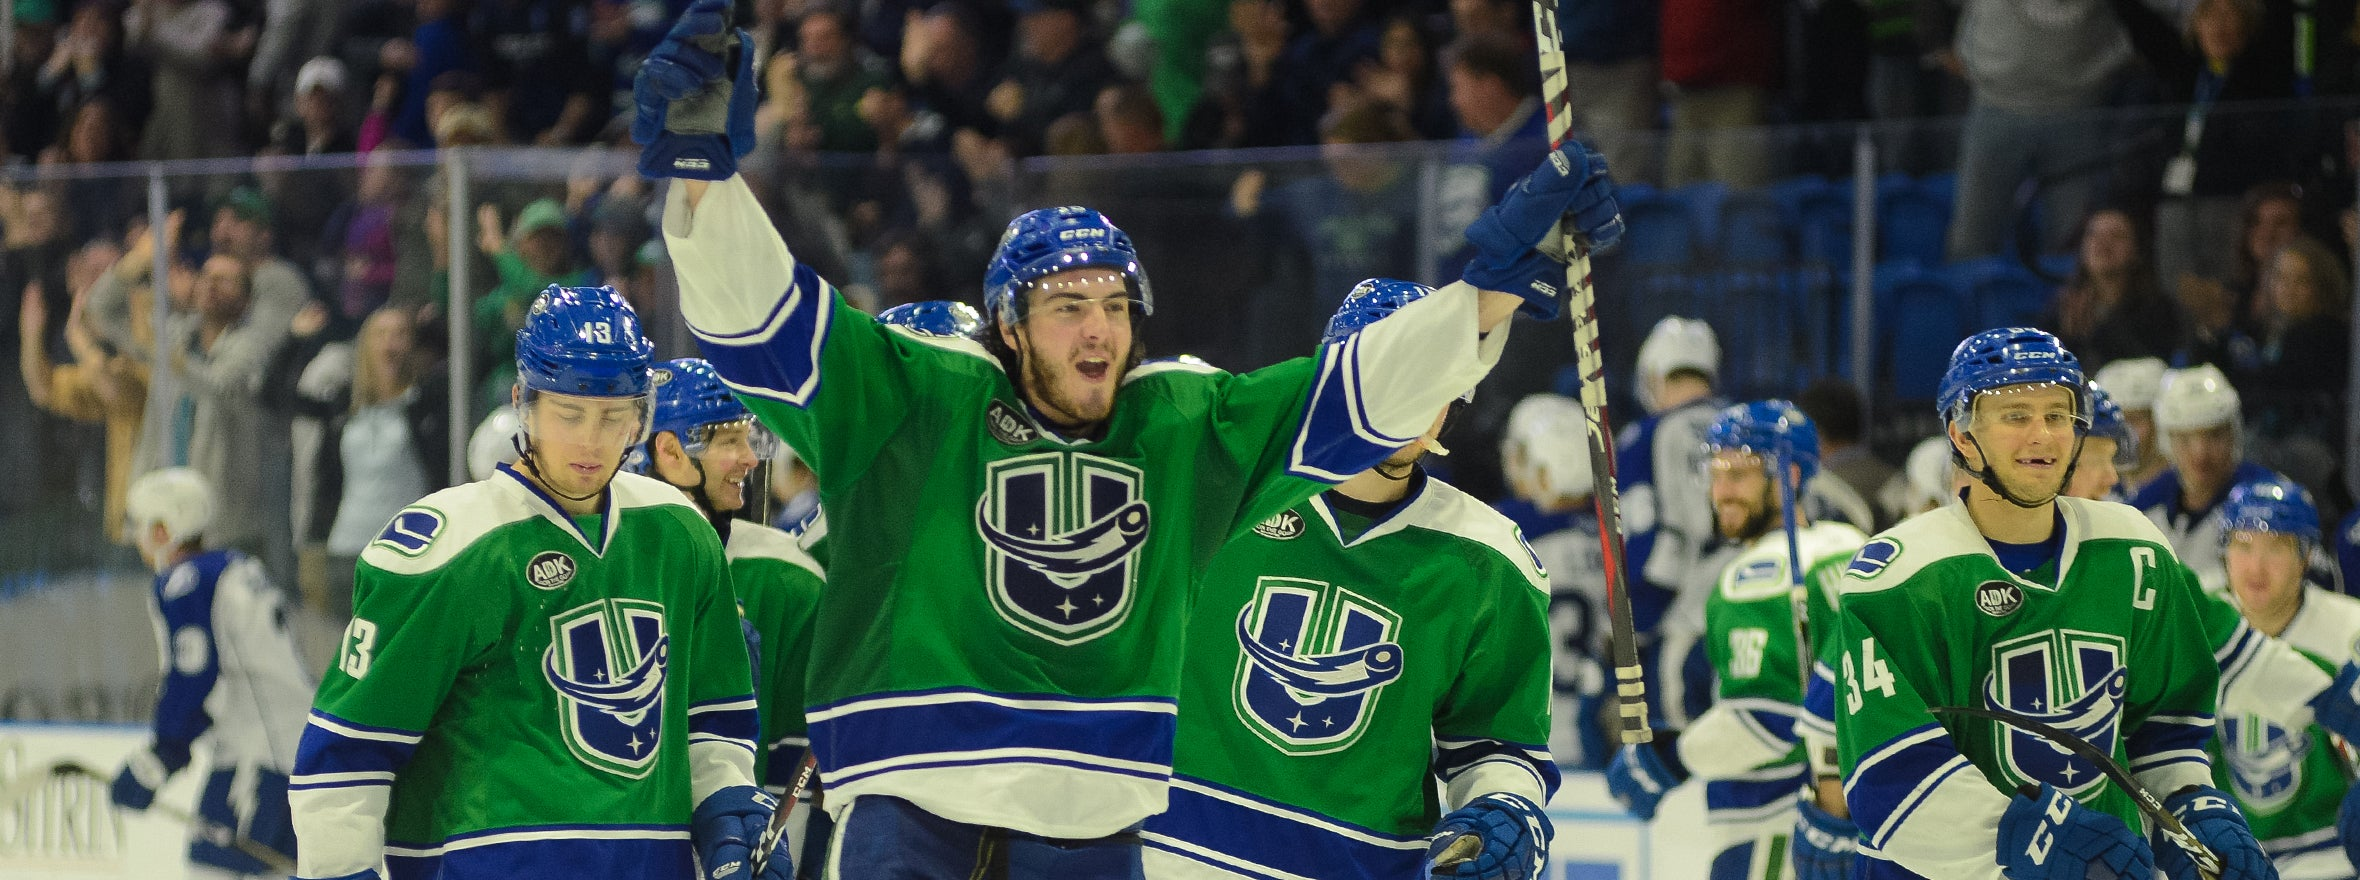 COMETS CAP OFF SEASON WITH SHOOTOUT WIN